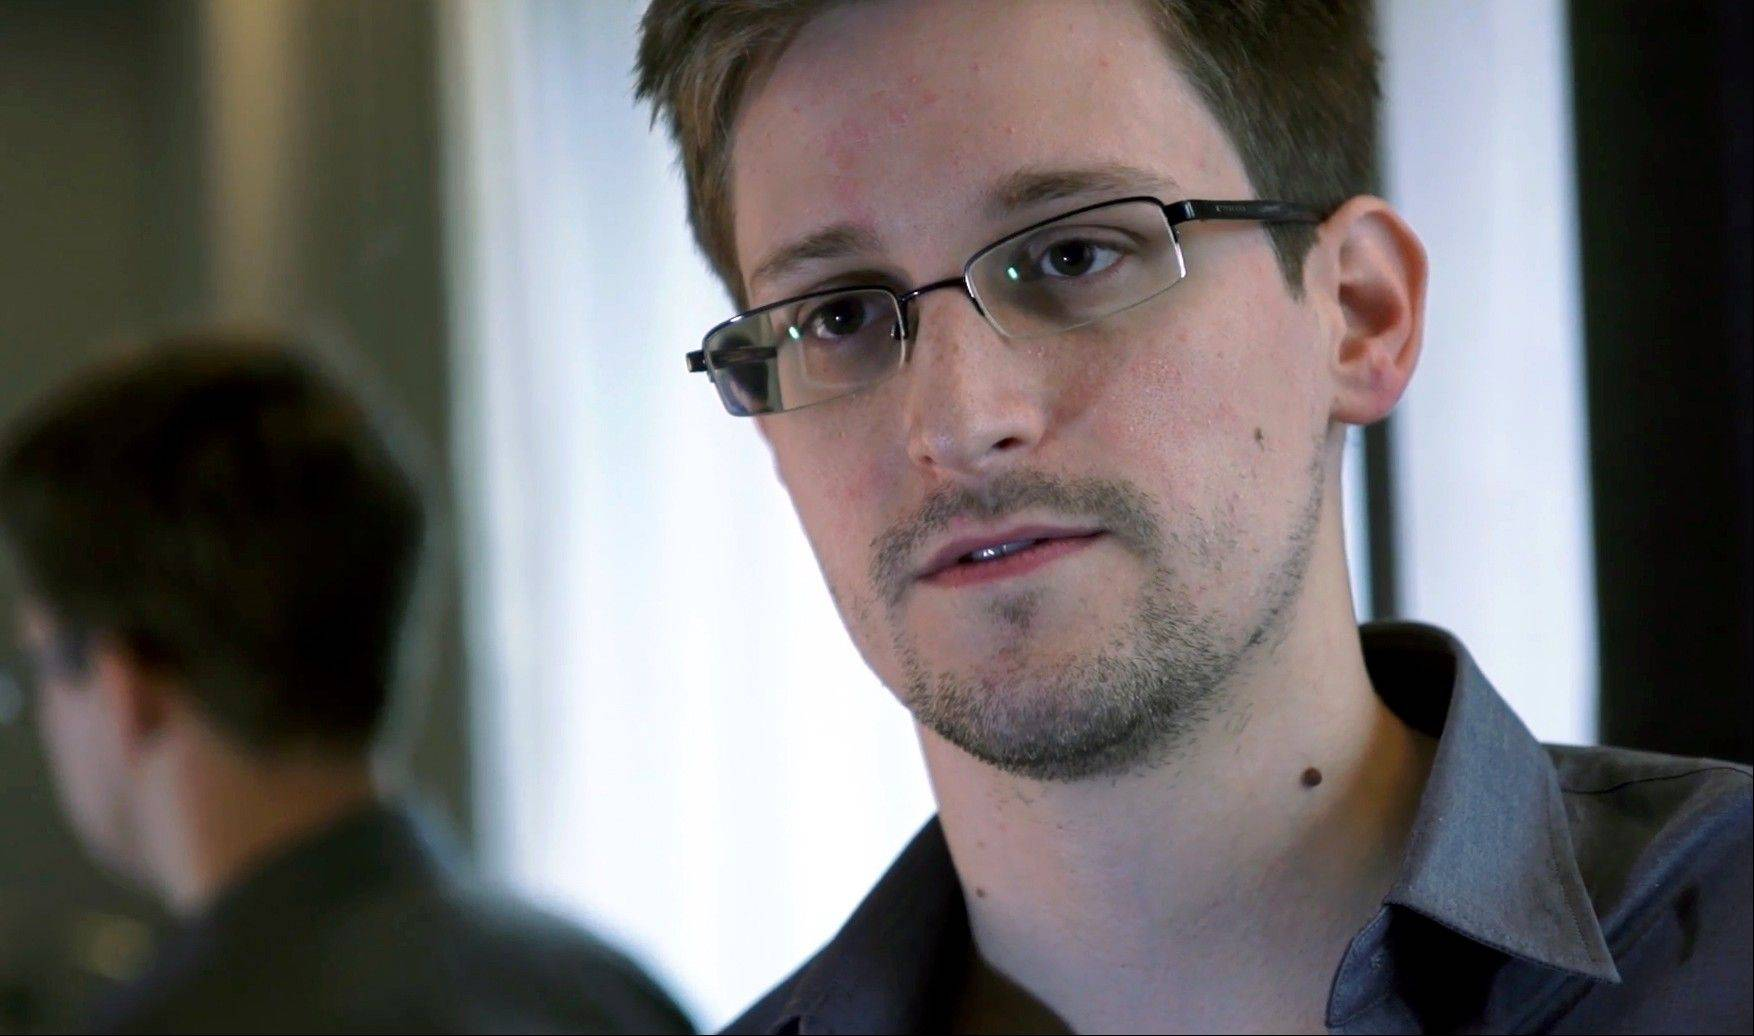 Associated Press/The Guardian NewspaperEdward Snowden, who worked as a contract employee at the National Security Agency, has given reports on intelligence programs to British media.